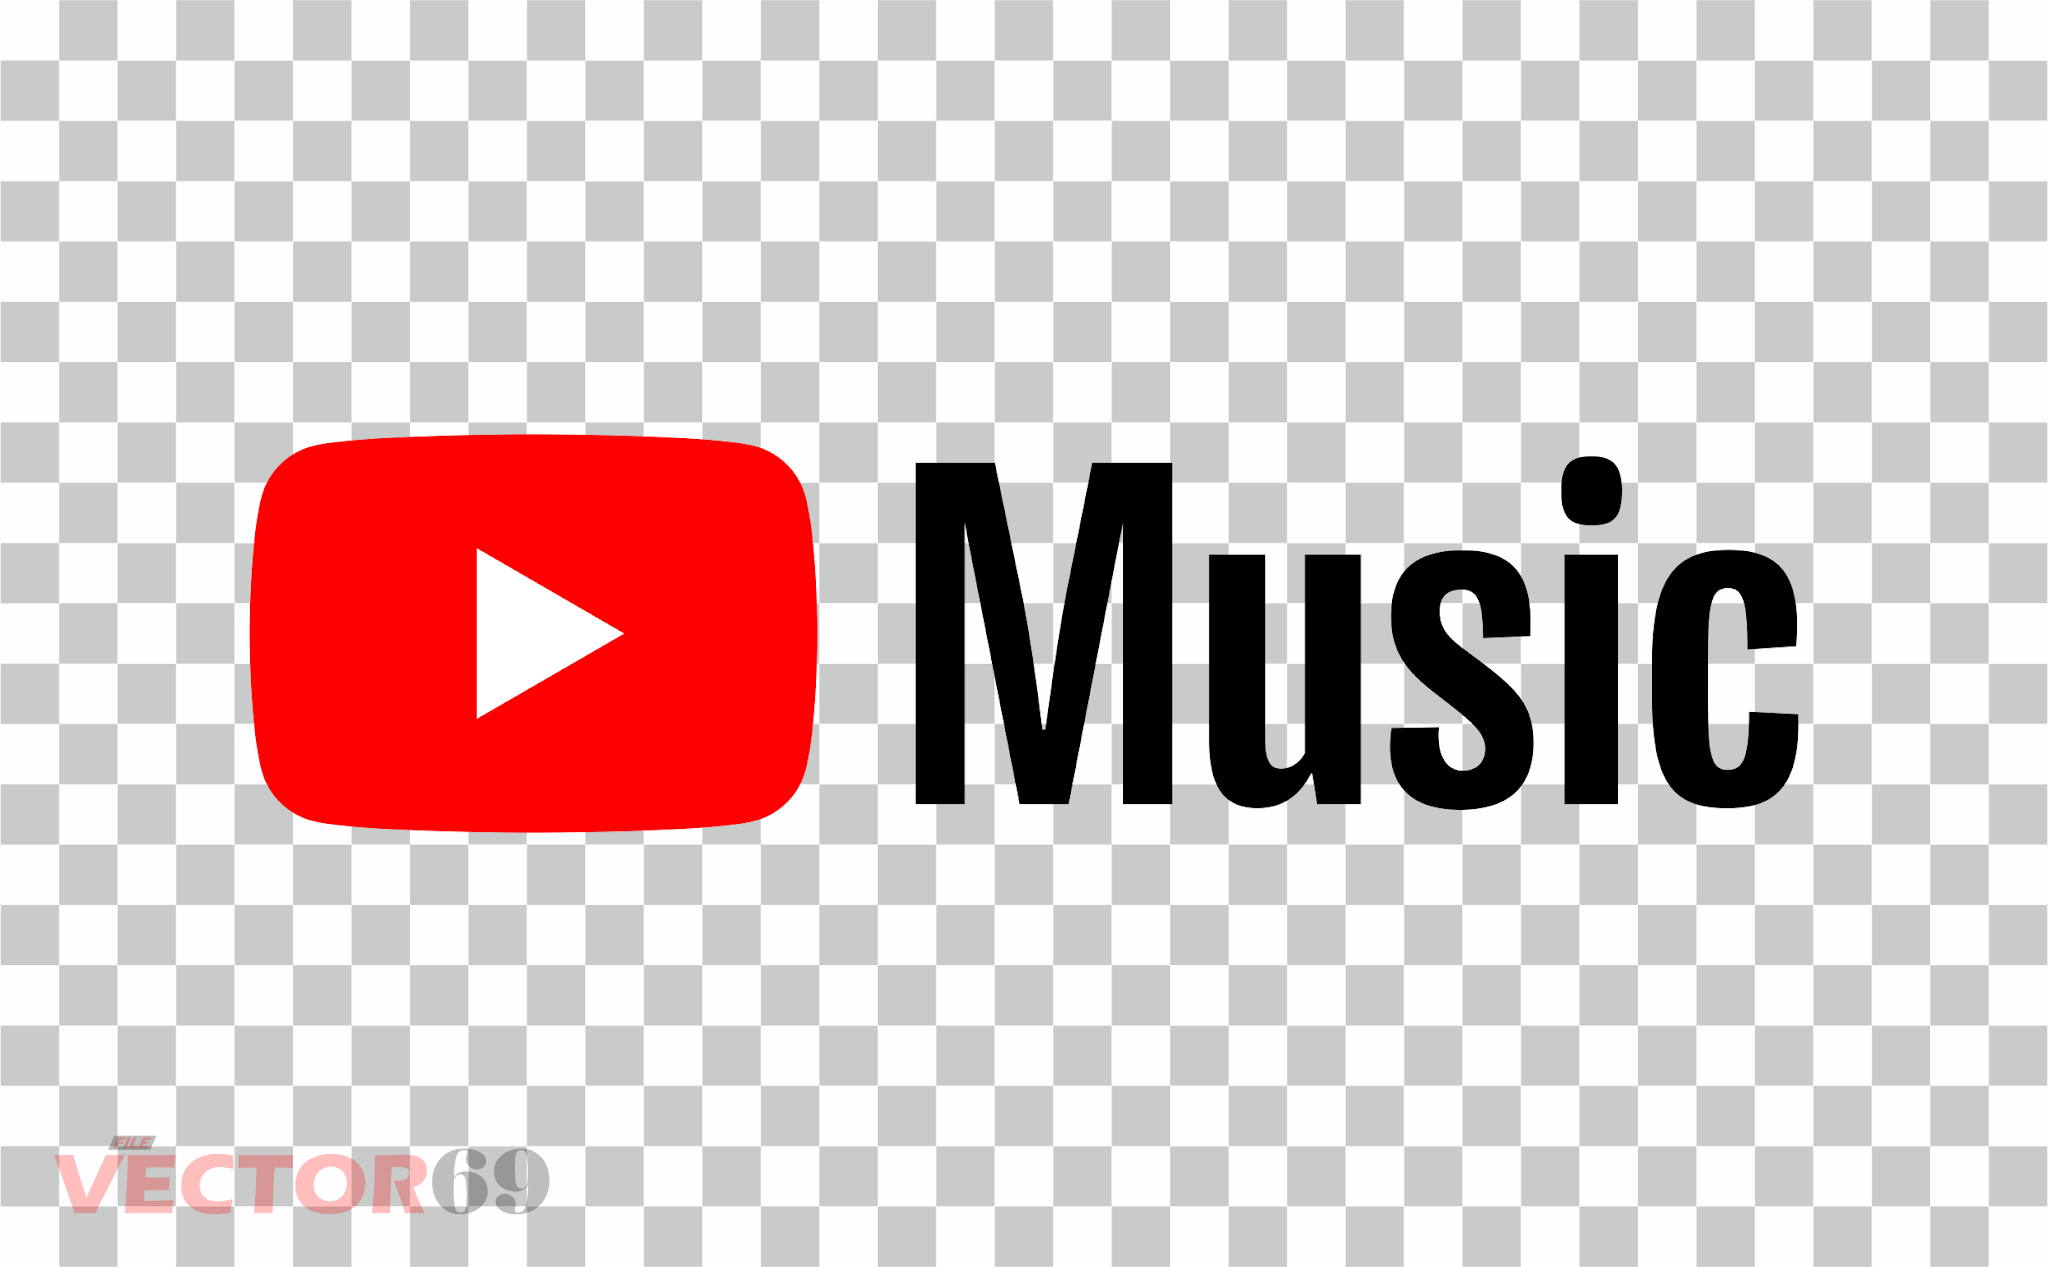 Youtube Music Logo - Download Vector File PNG (Portable Network Graphics)